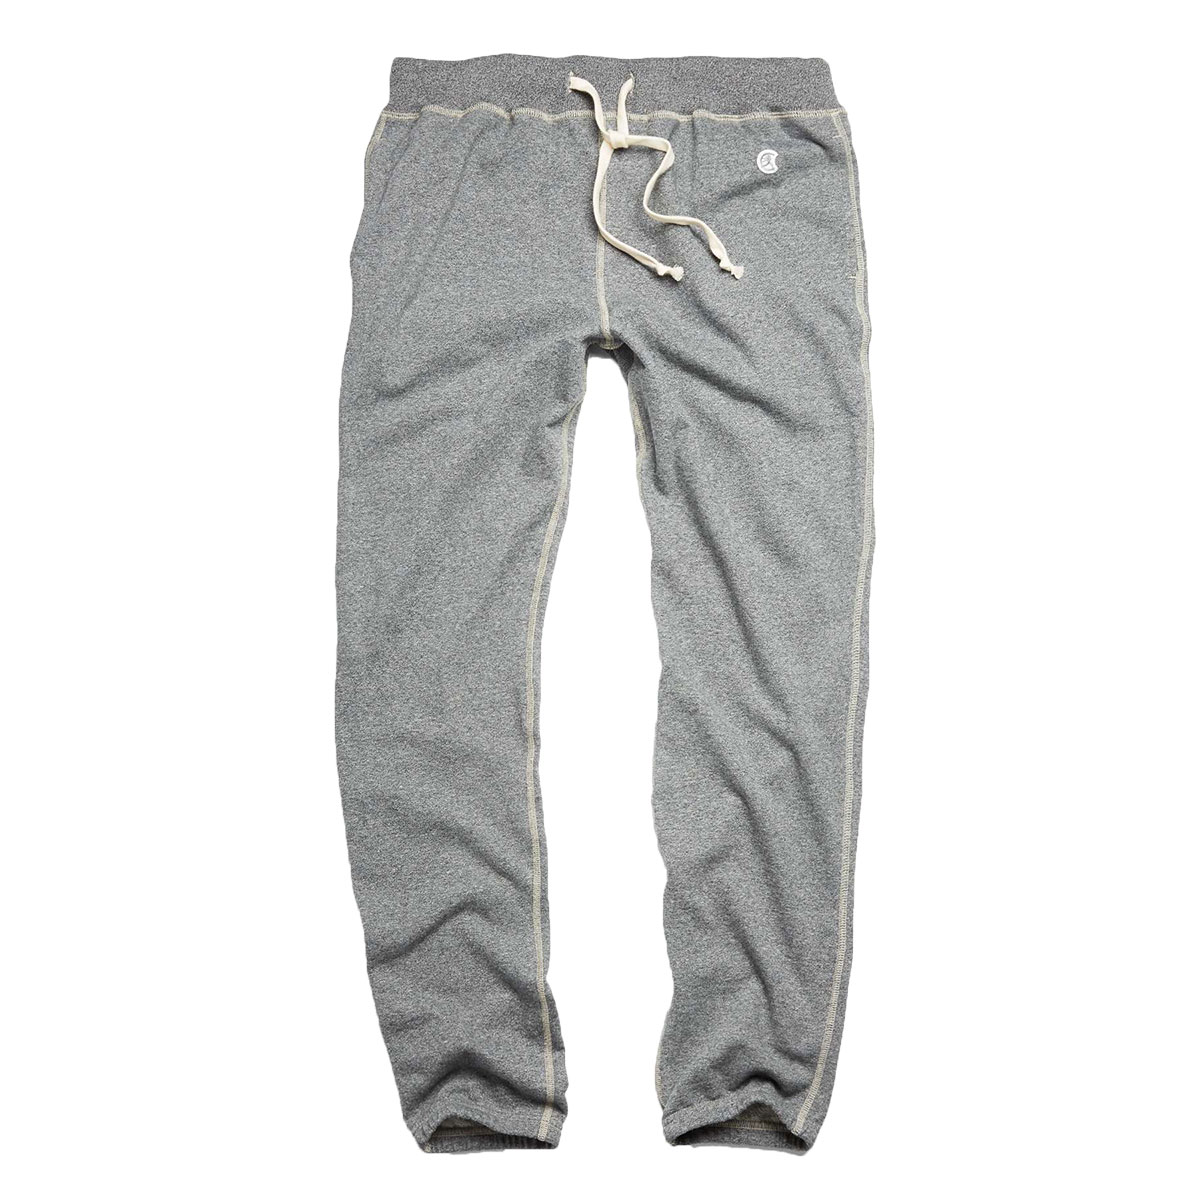 Todd Snyder x Champion Classic Fleece Sweatpant